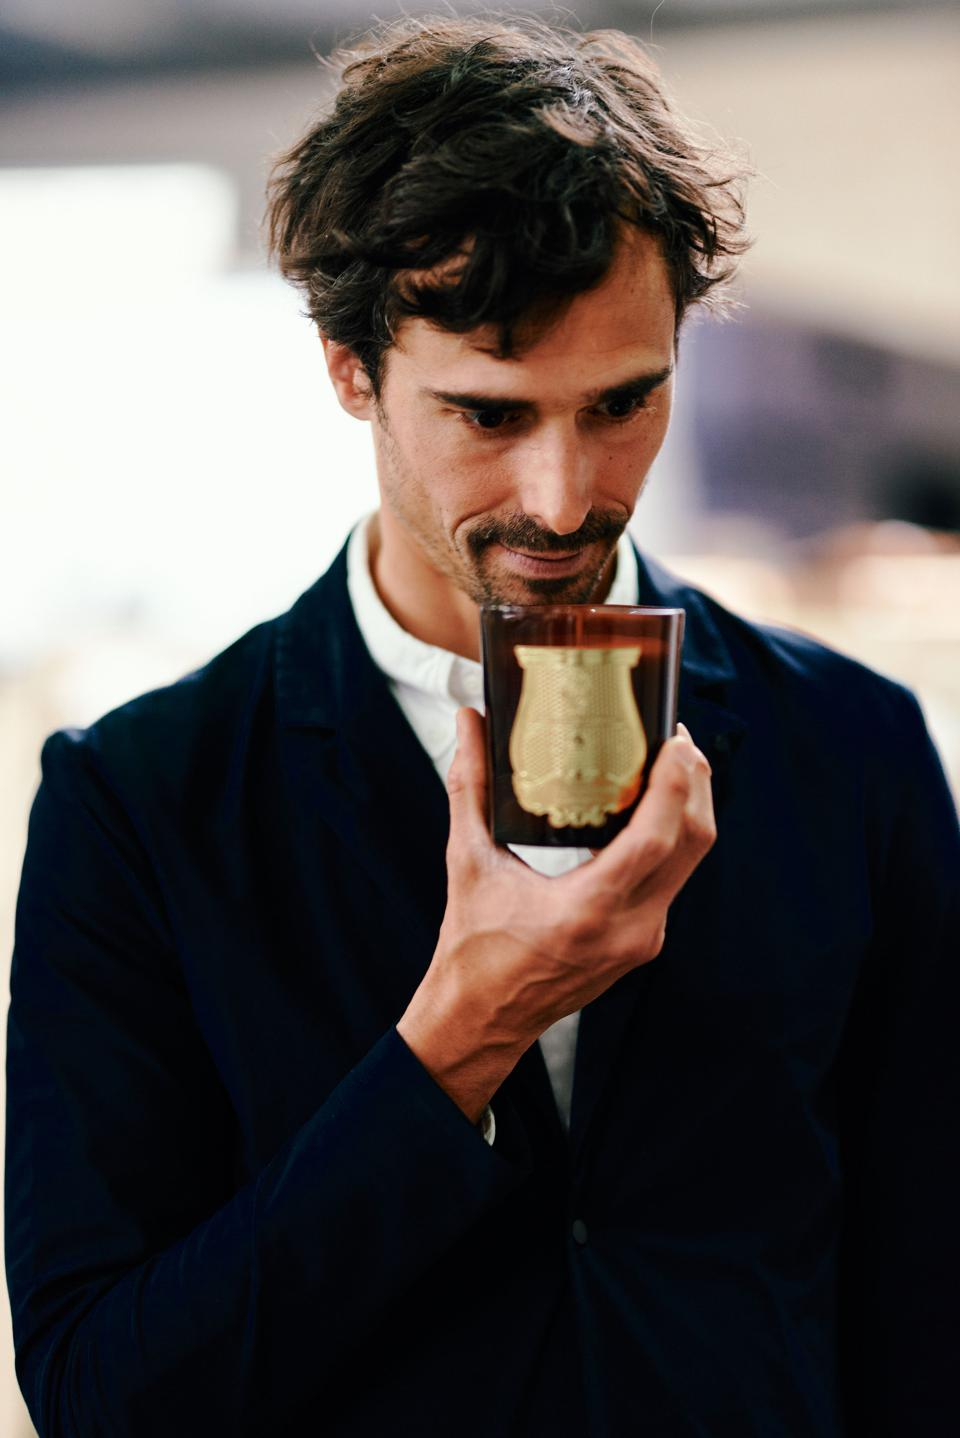 Julien Pruvost, Creative Director of Trudon and Carrieres Freres